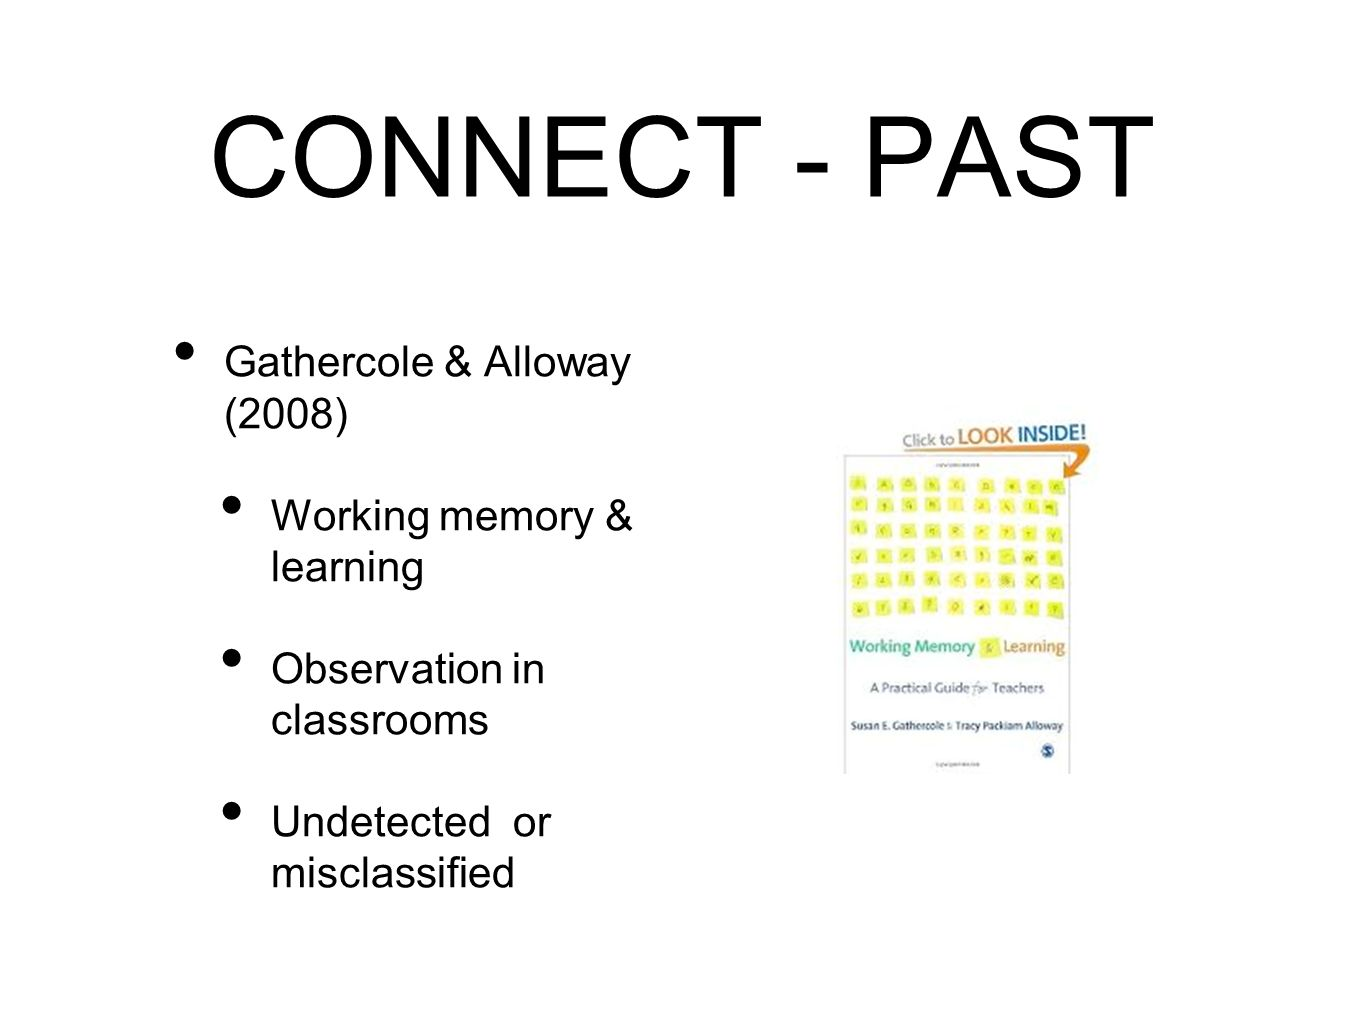 4 CONNECT - PAST Gathercole & Alloway (2008) Working memory & learning  Observation in classrooms Undetected or misclassified